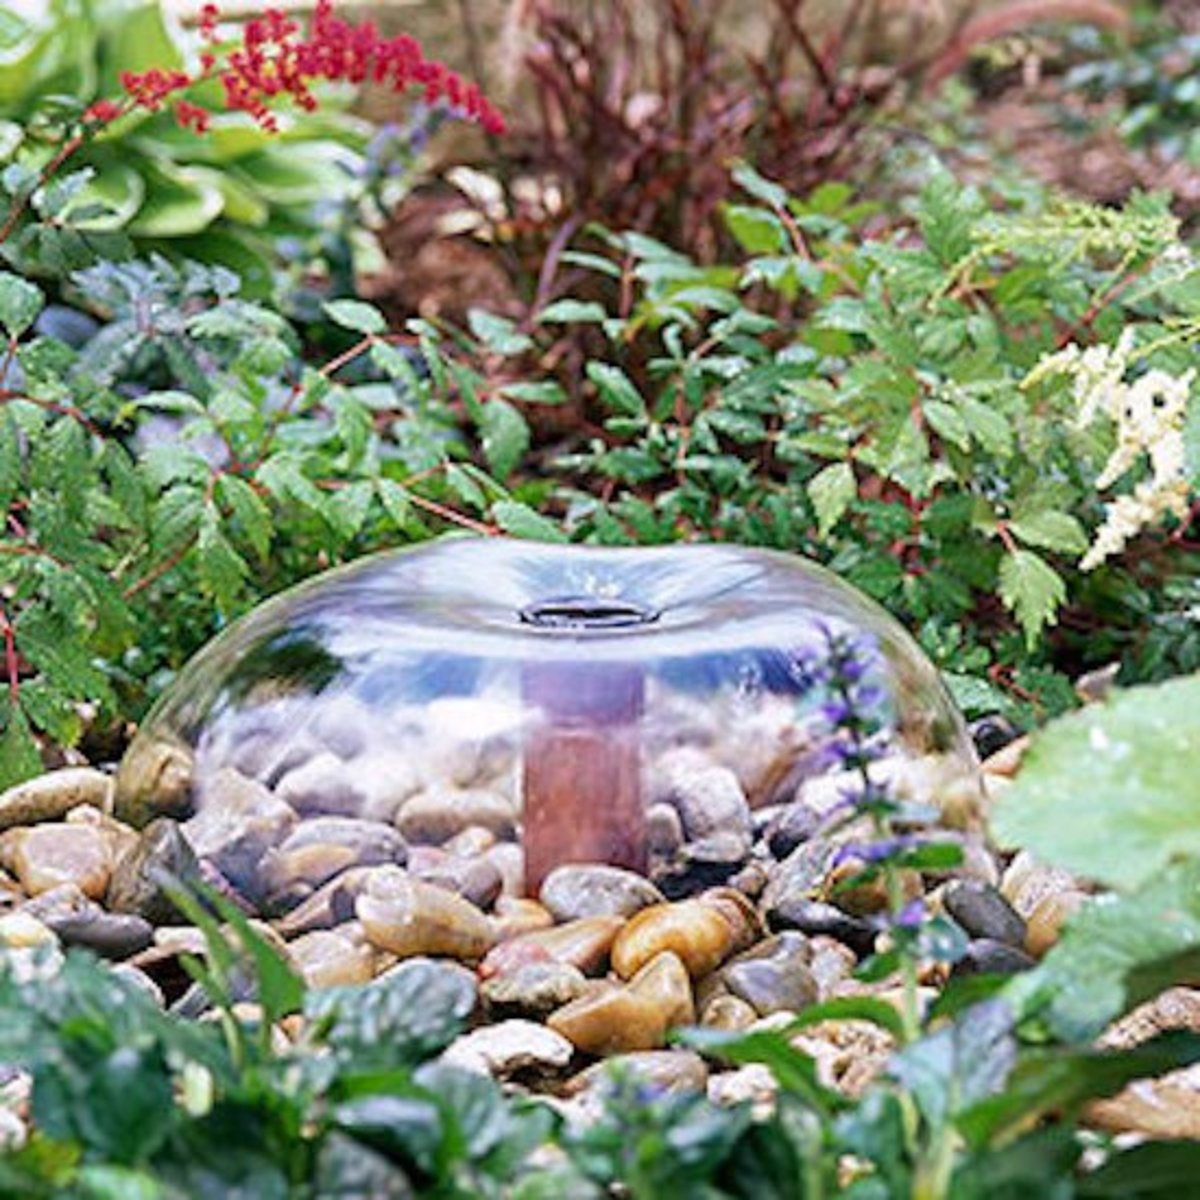 Simple Water Features For The Garden: Amazing Water Feature Ideas For Your Garden